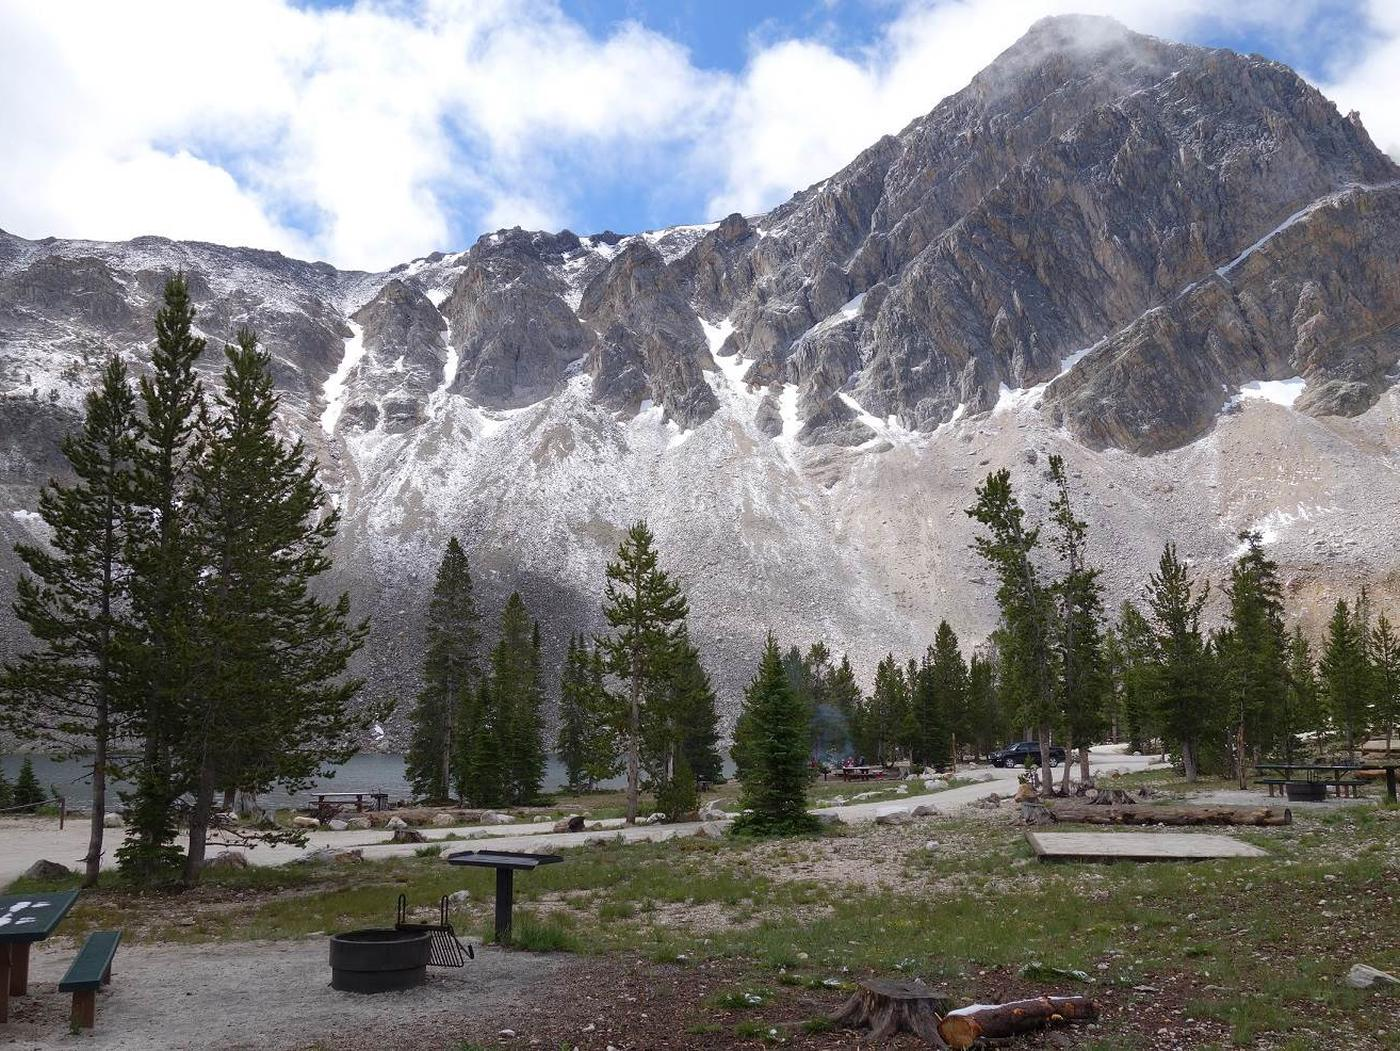 Meadow Lake Campground and Meadow Lake Peak